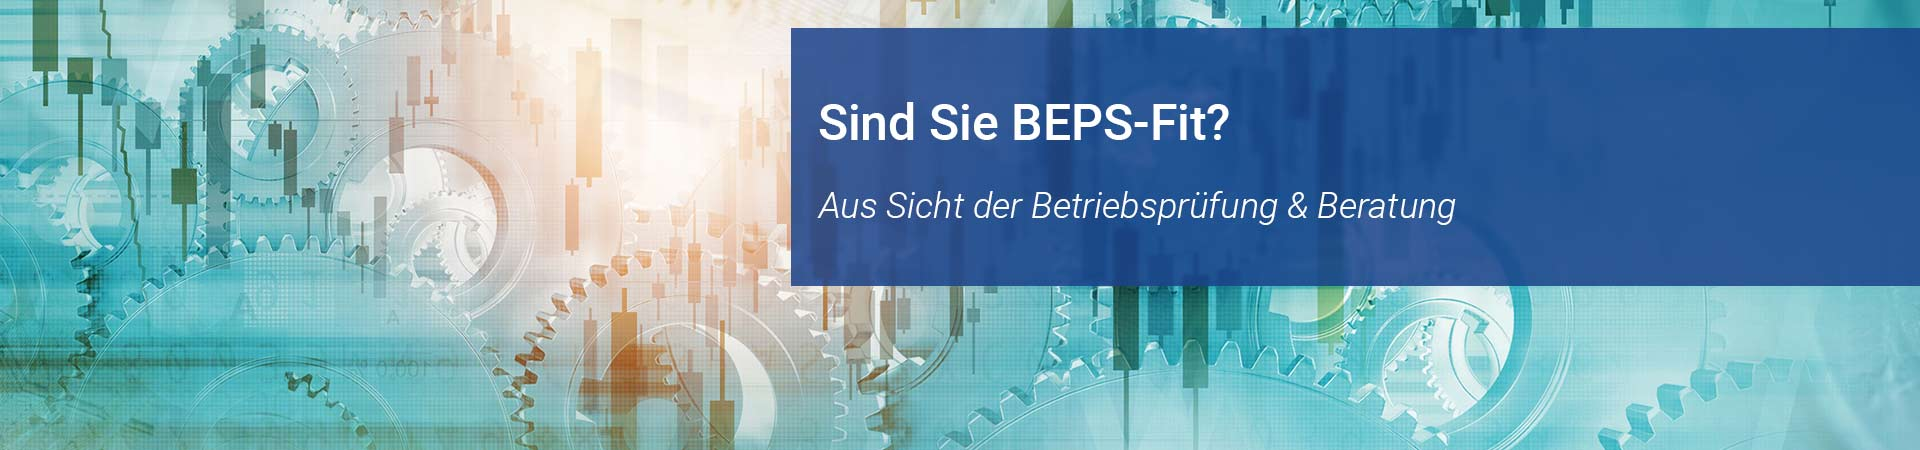 Beps fit